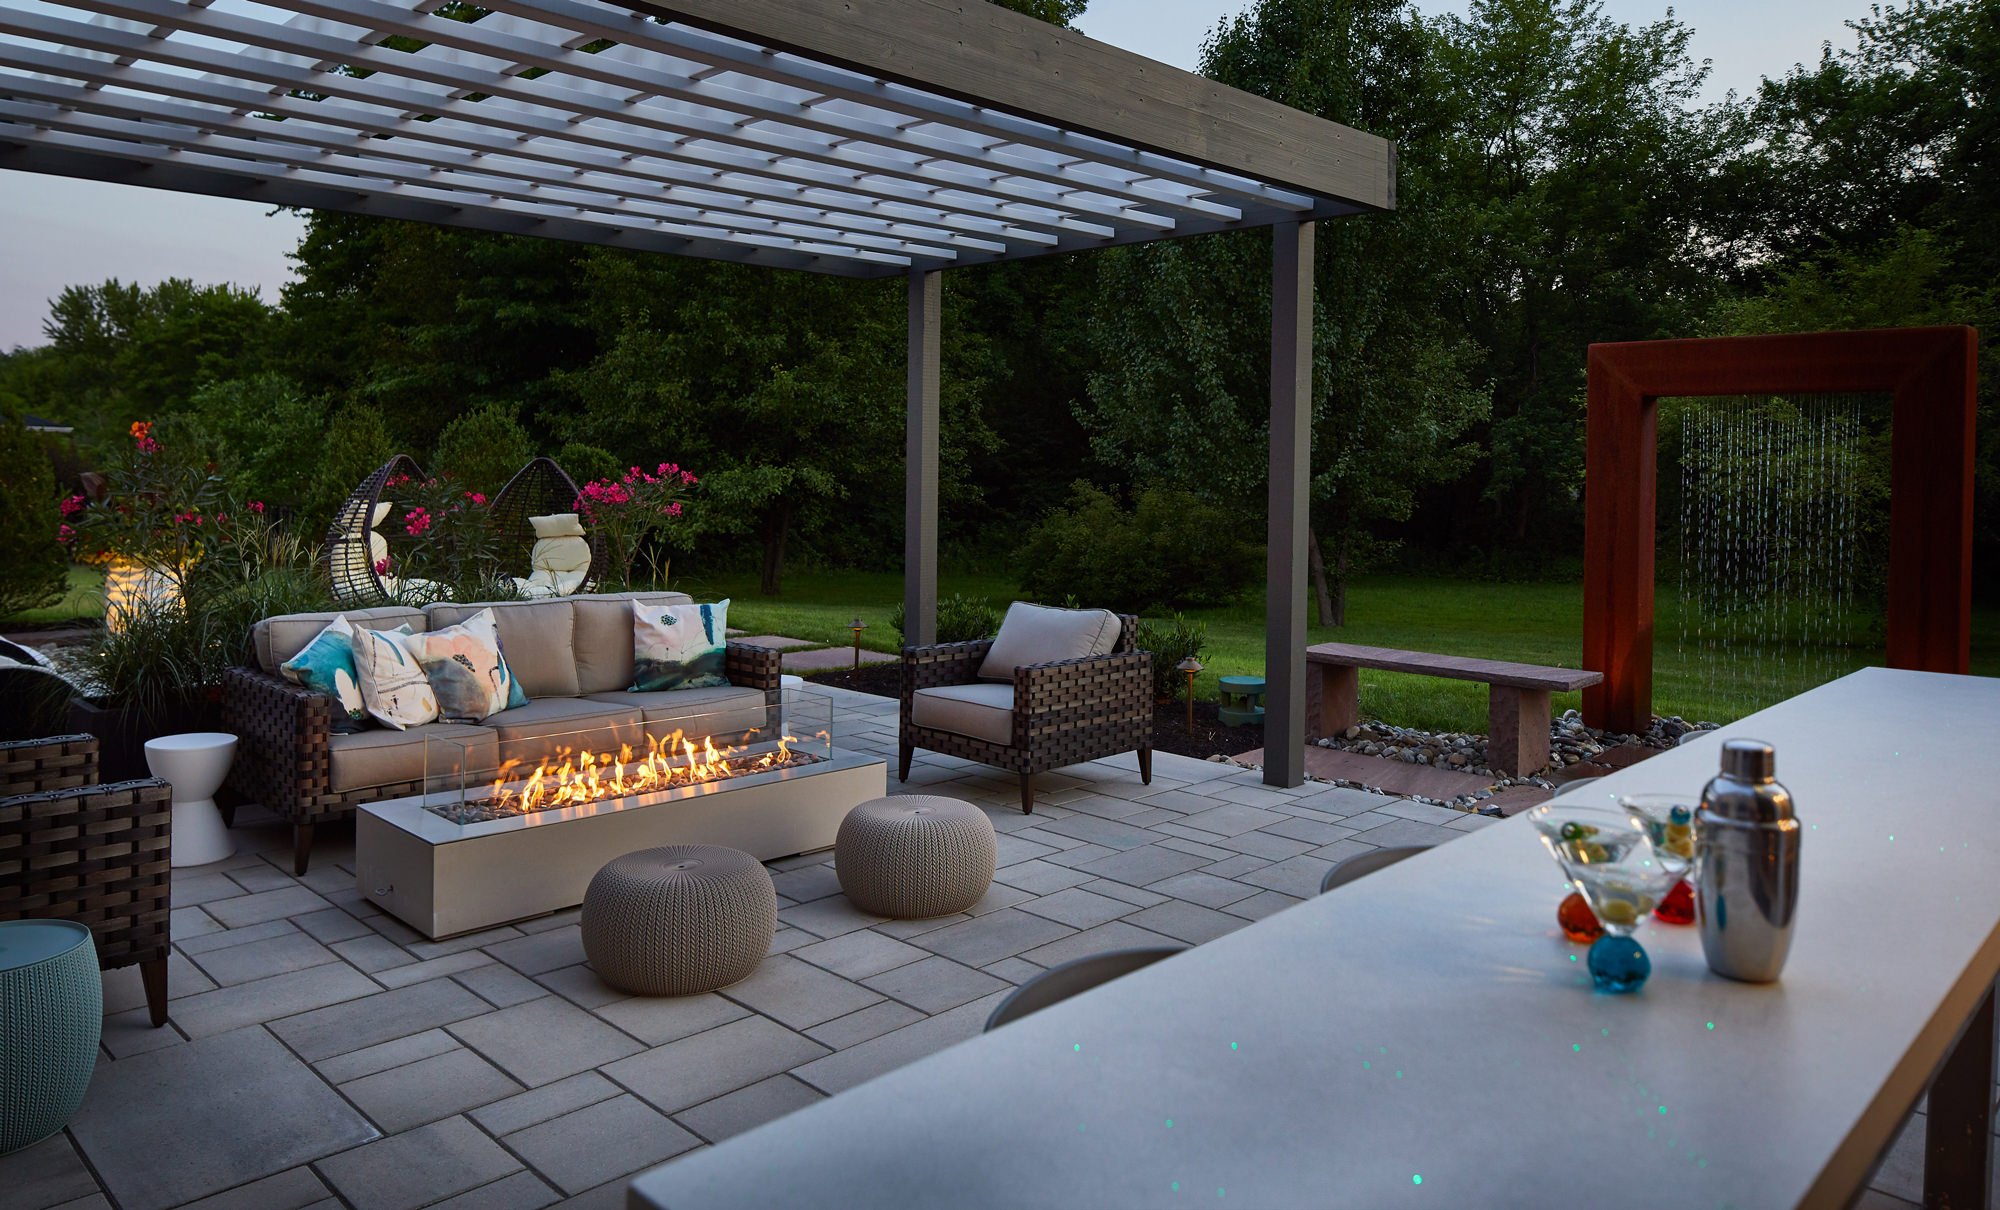 Fitch Residence « MasterPLAN Outdoor Living on Masterplan Outdoor Living id=12904